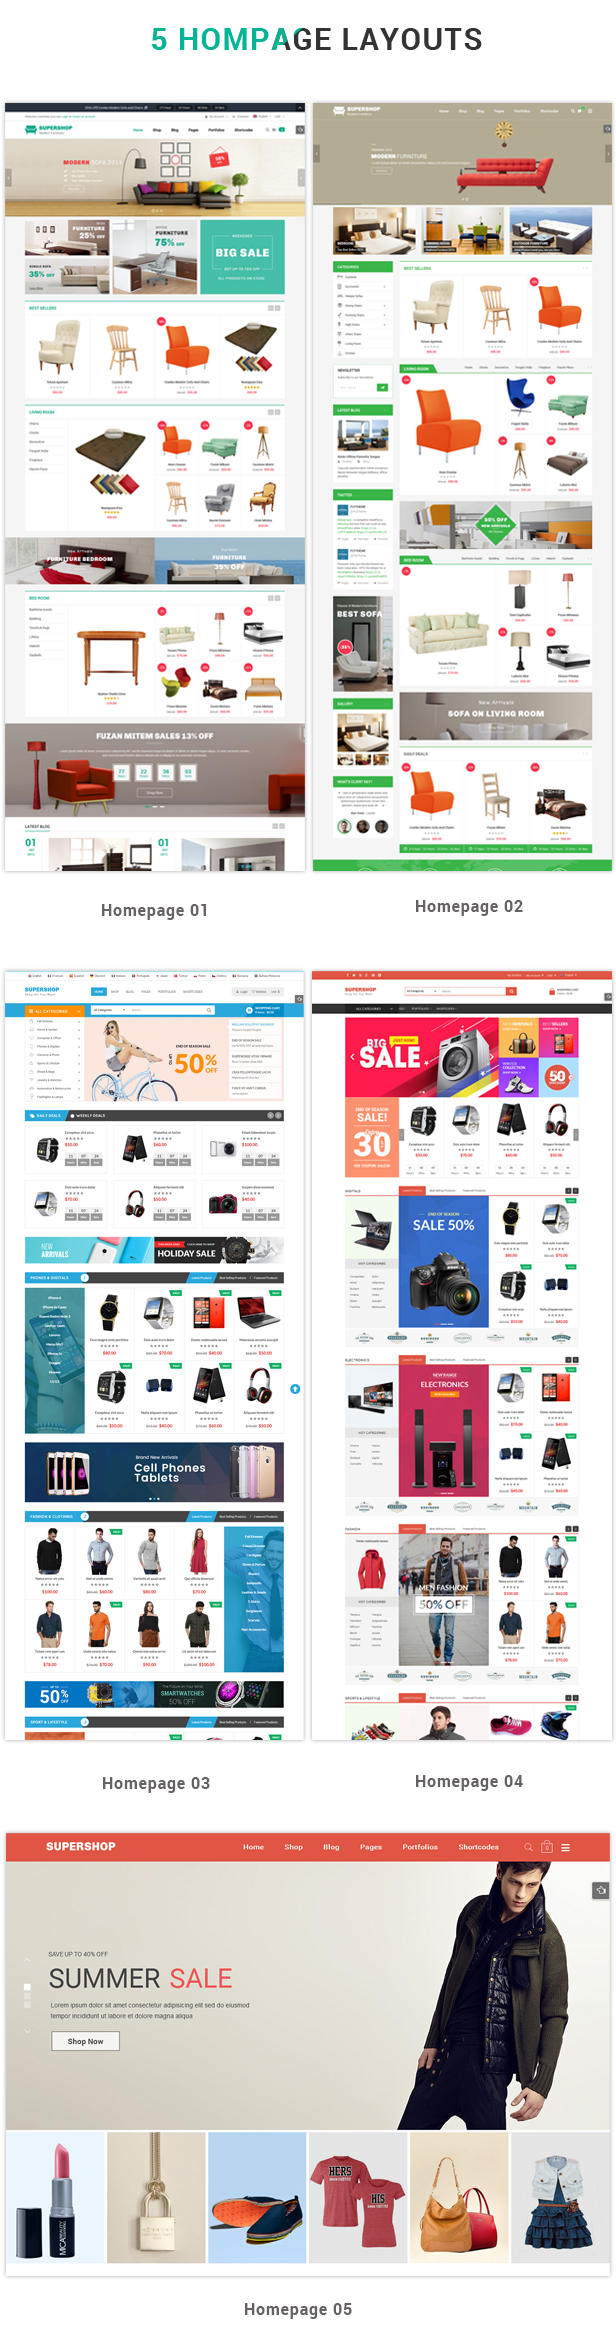 Supershop - Homepage